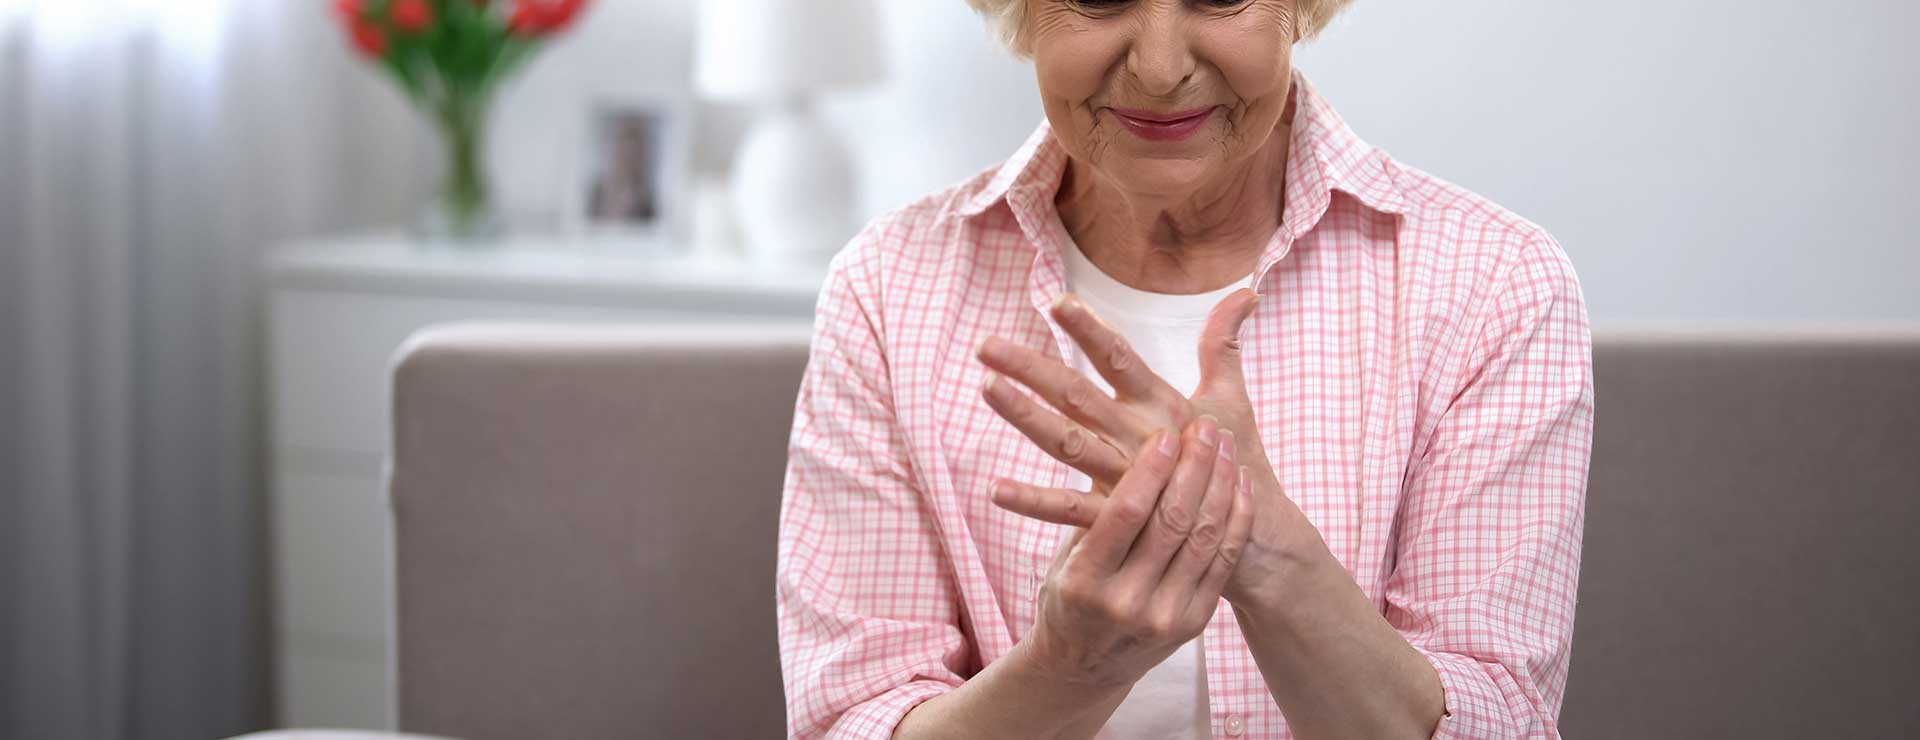 Women experiencing pain from osteoarthritis in hand